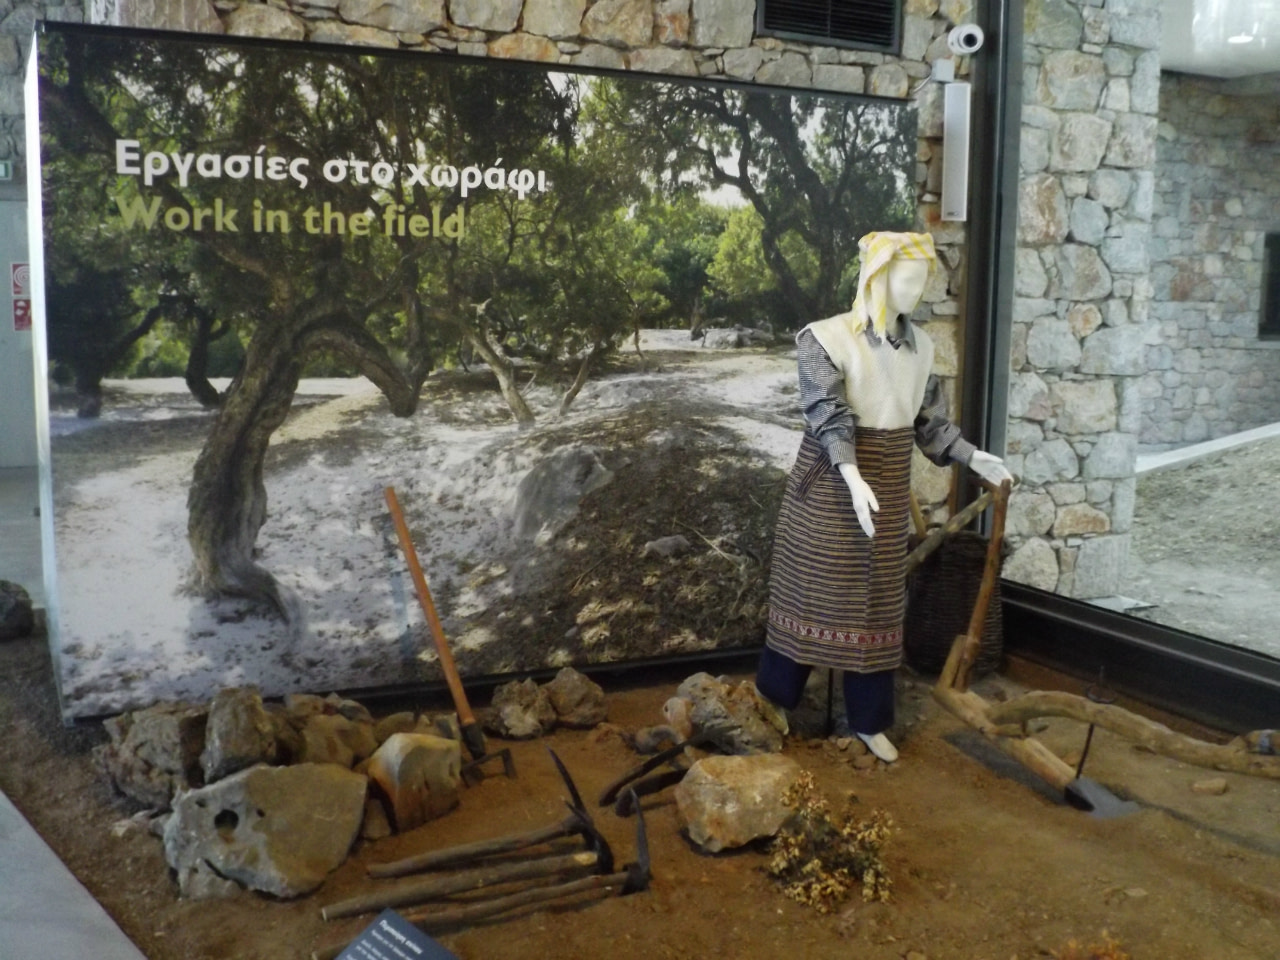 pandoras-kitchen-blog-greece-chios-mastic-museum